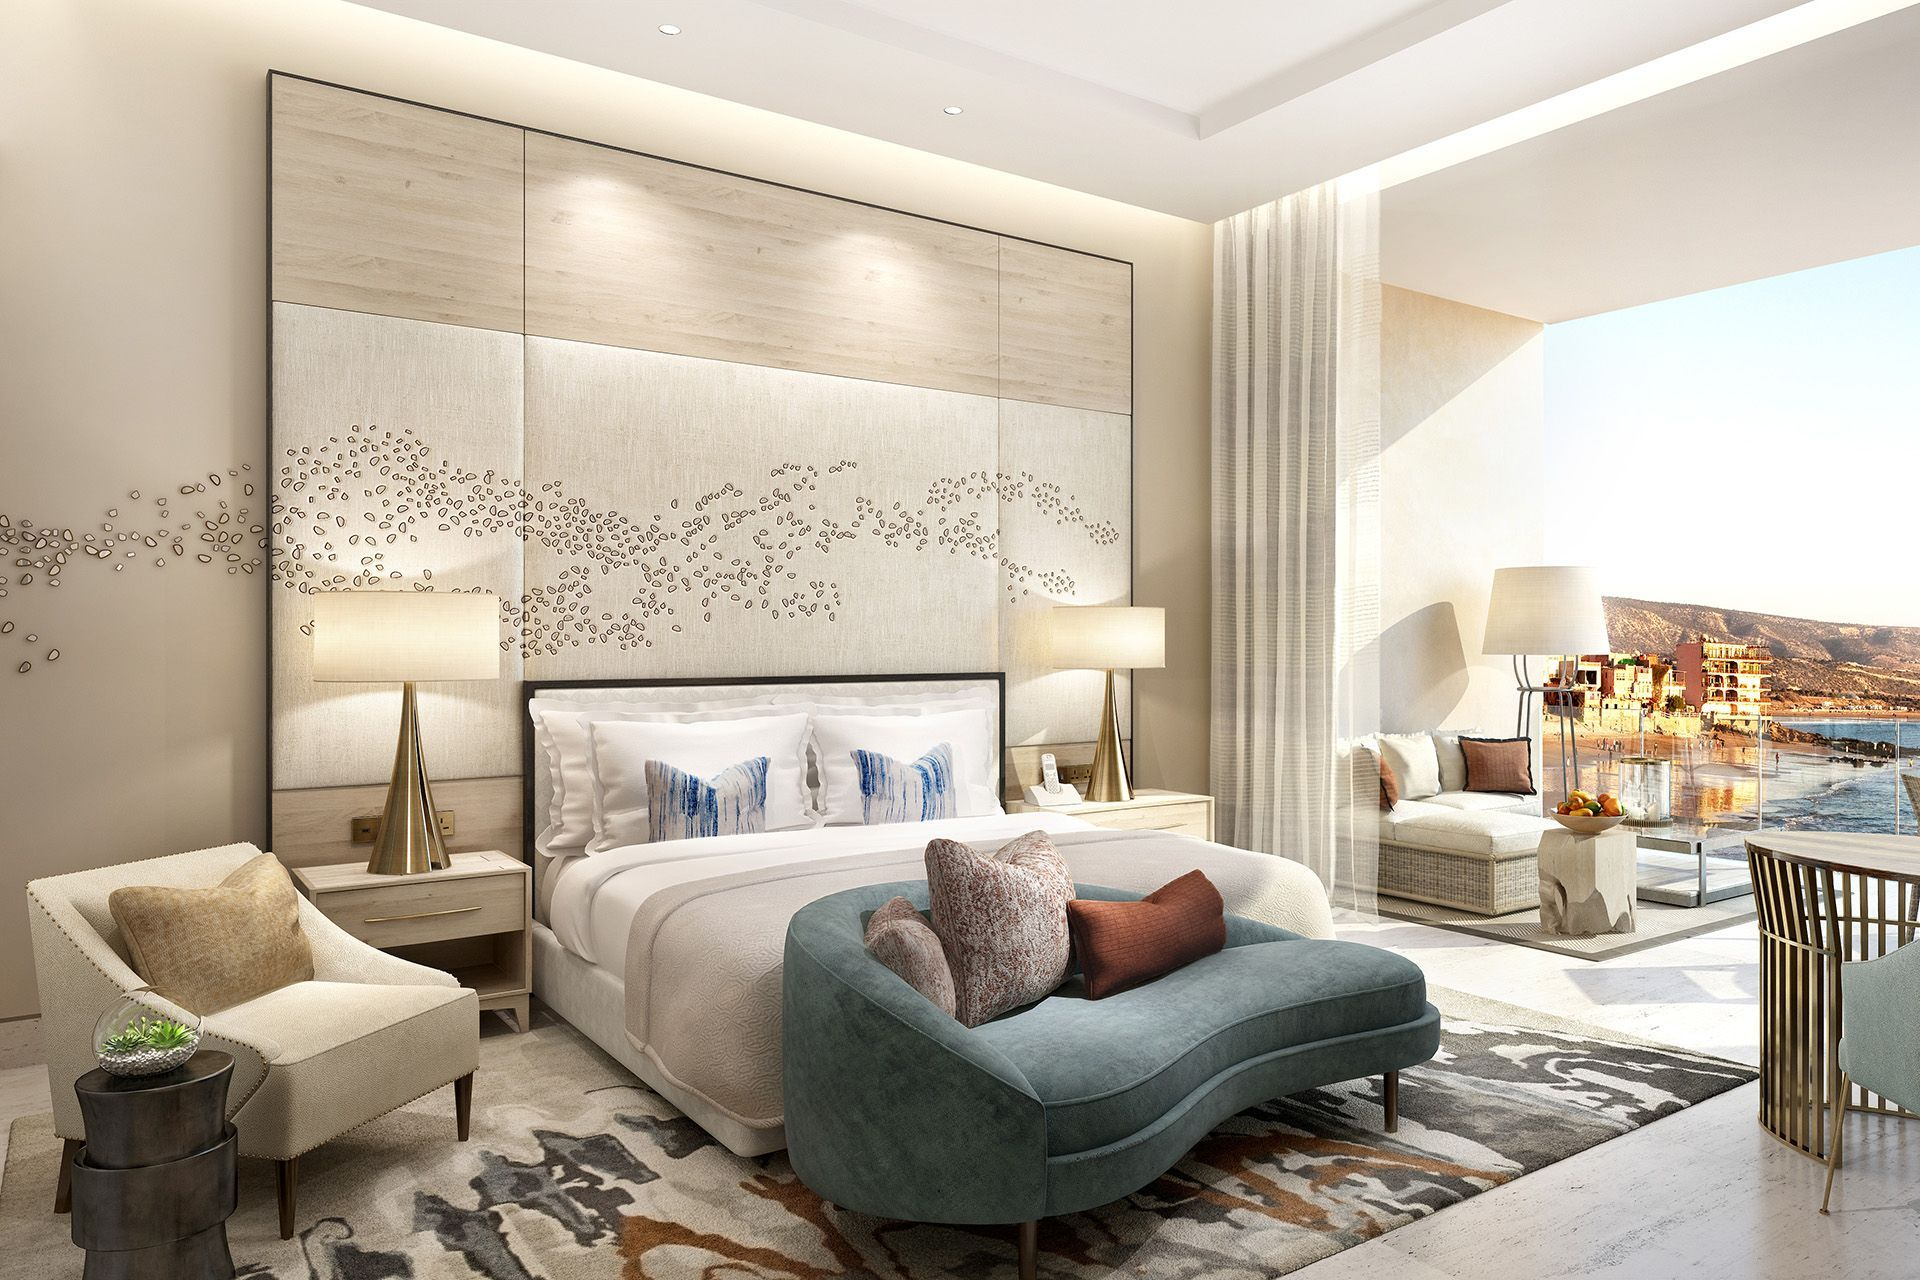 Four seasons taghazout interior designers wimberly for Four bedroom design